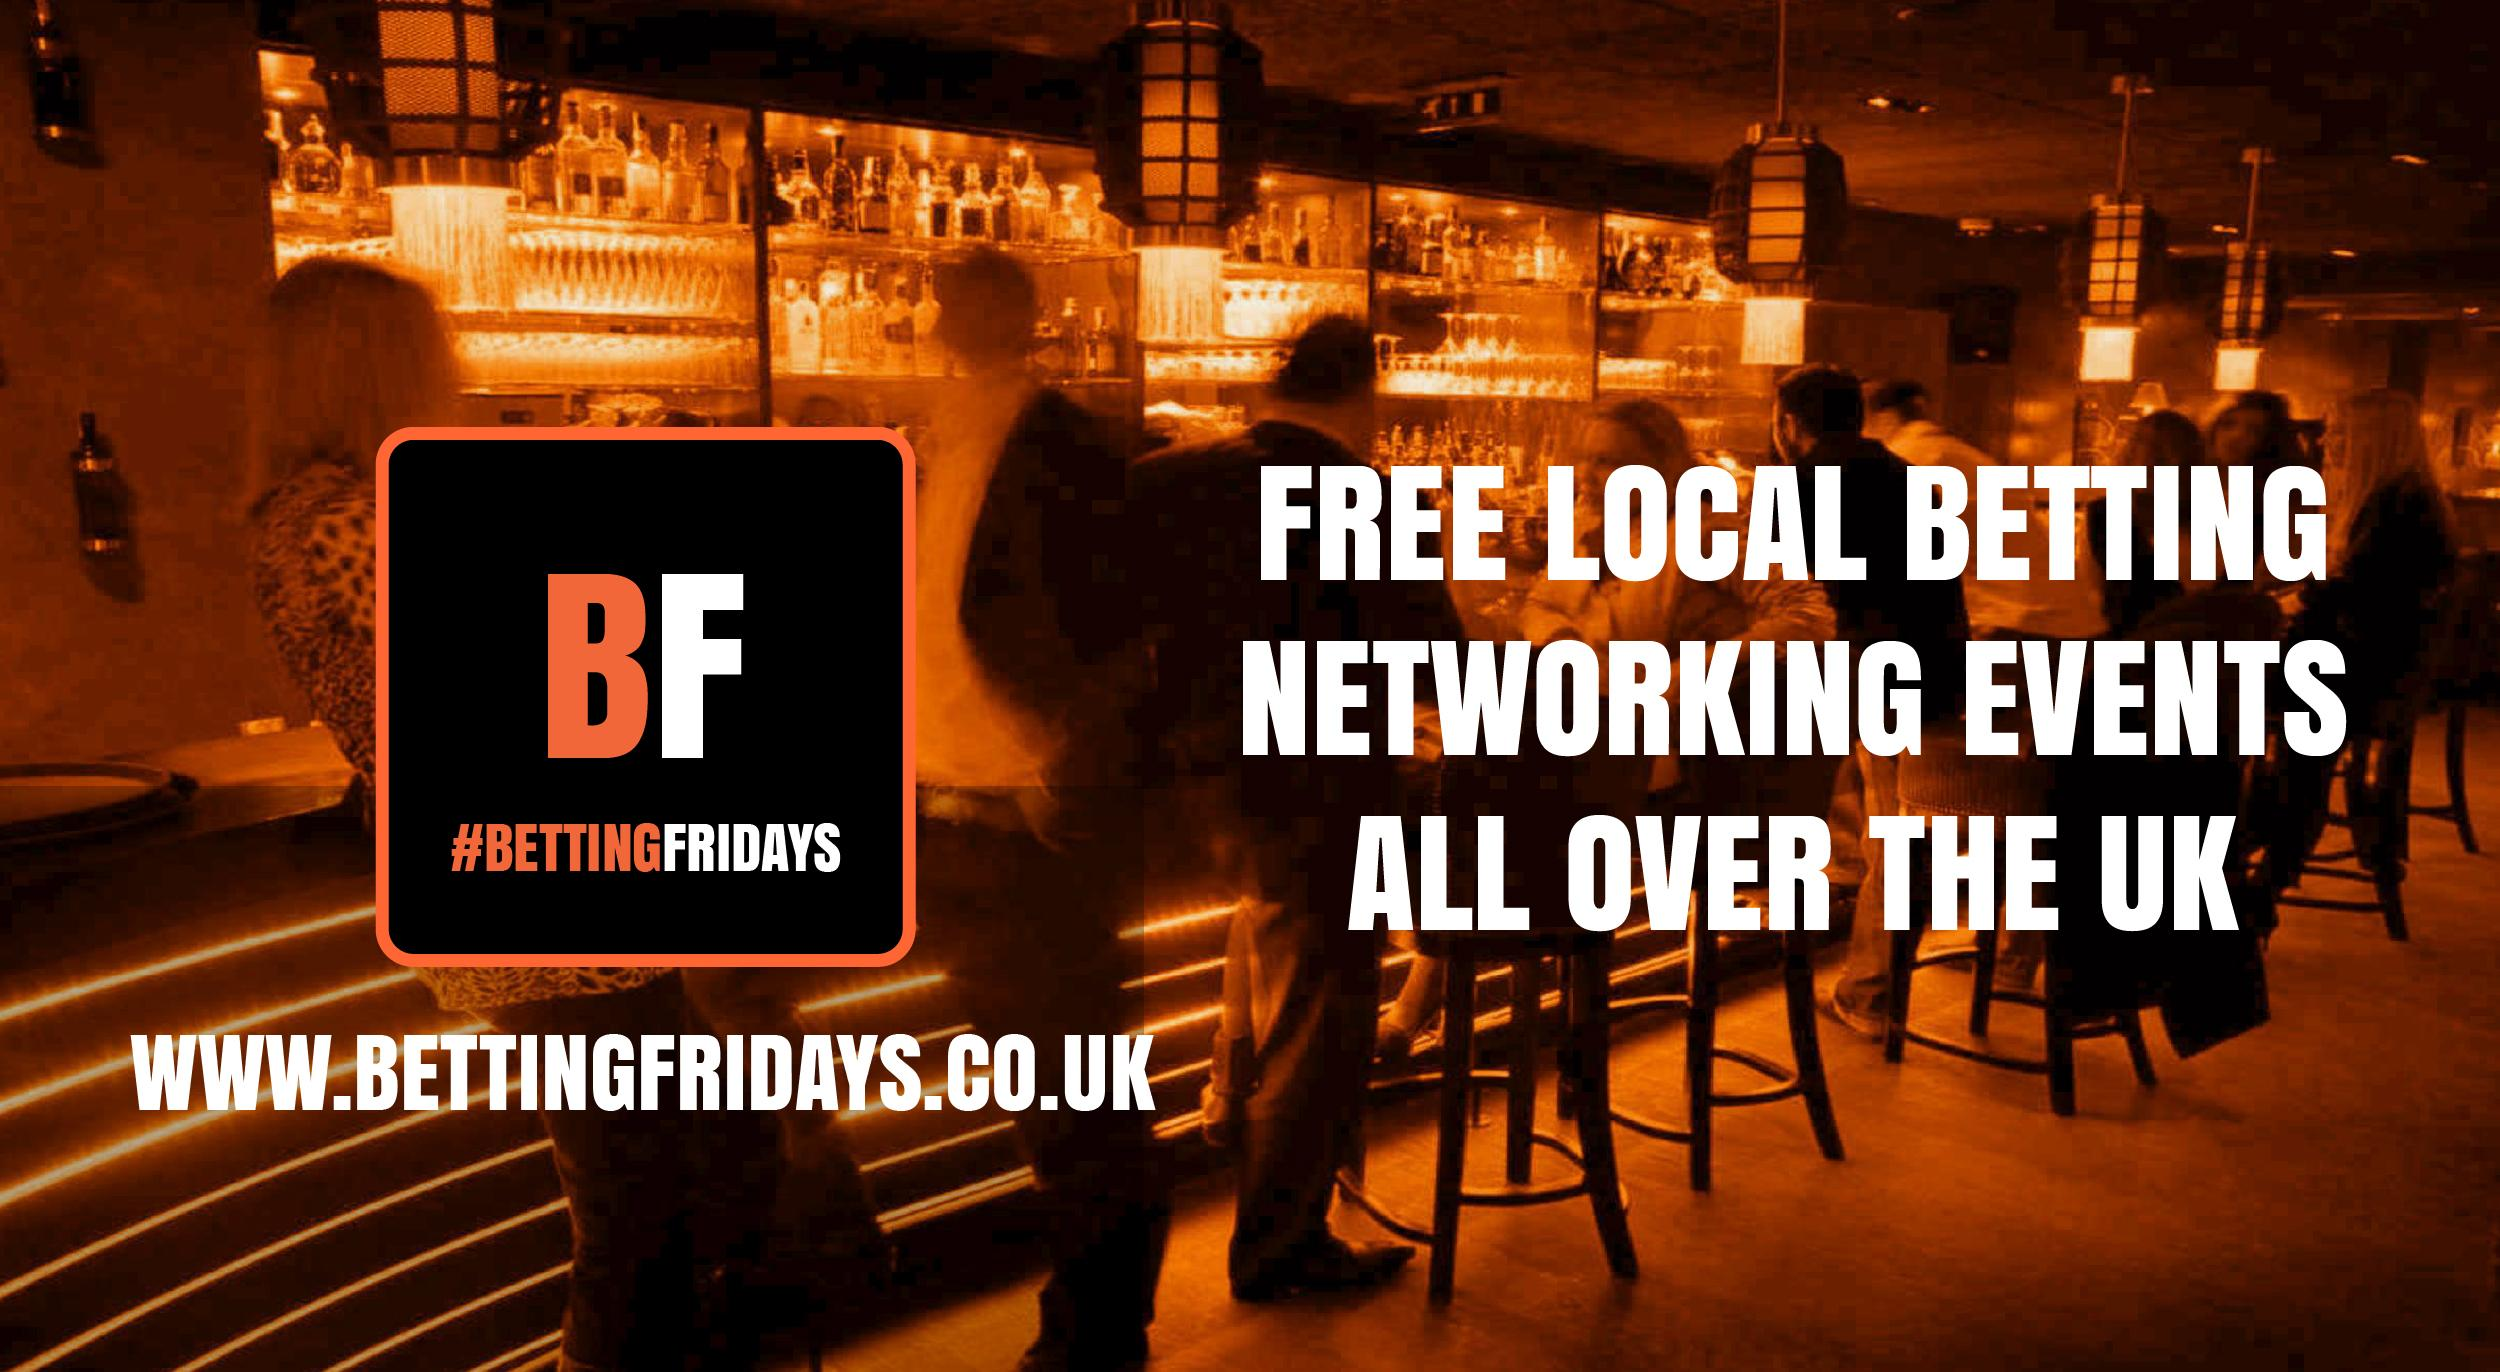 Betting Fridays! Free betting networking event in New Ferry